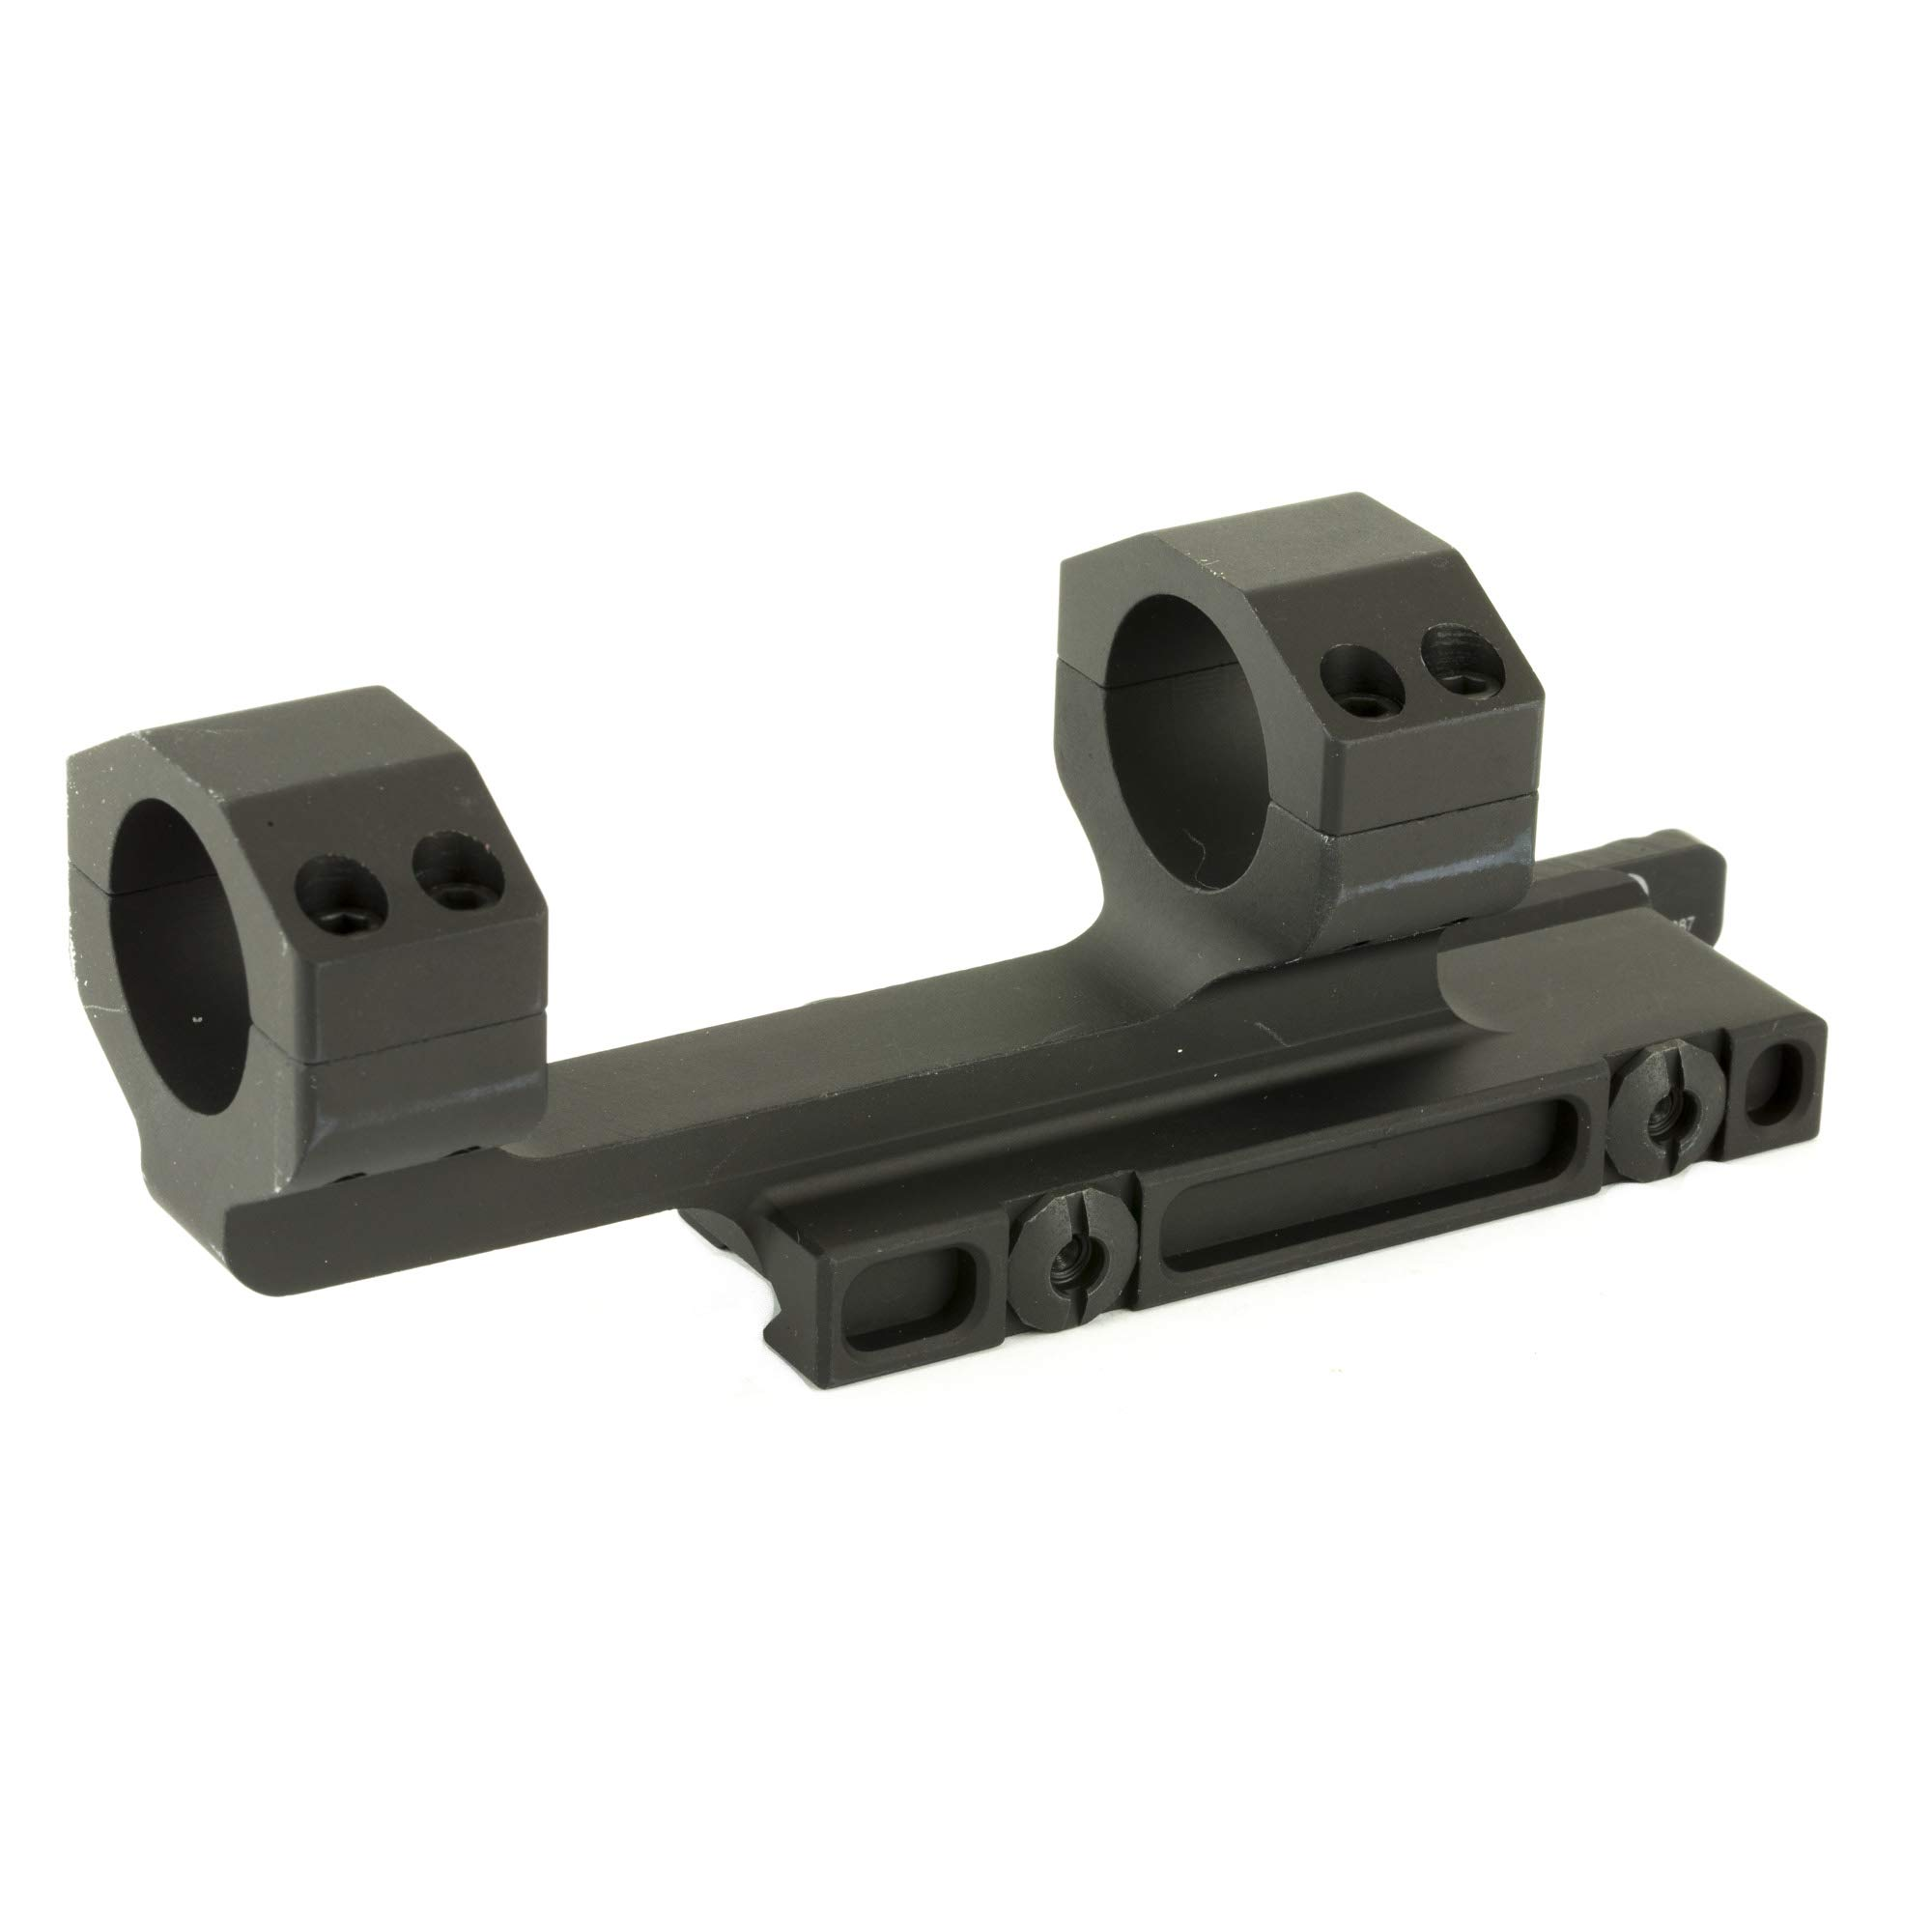 MWI Midwest Qd SCP Mount 1'' W/ 1.5'' Offset Stock Accessories by Midwest Gloves